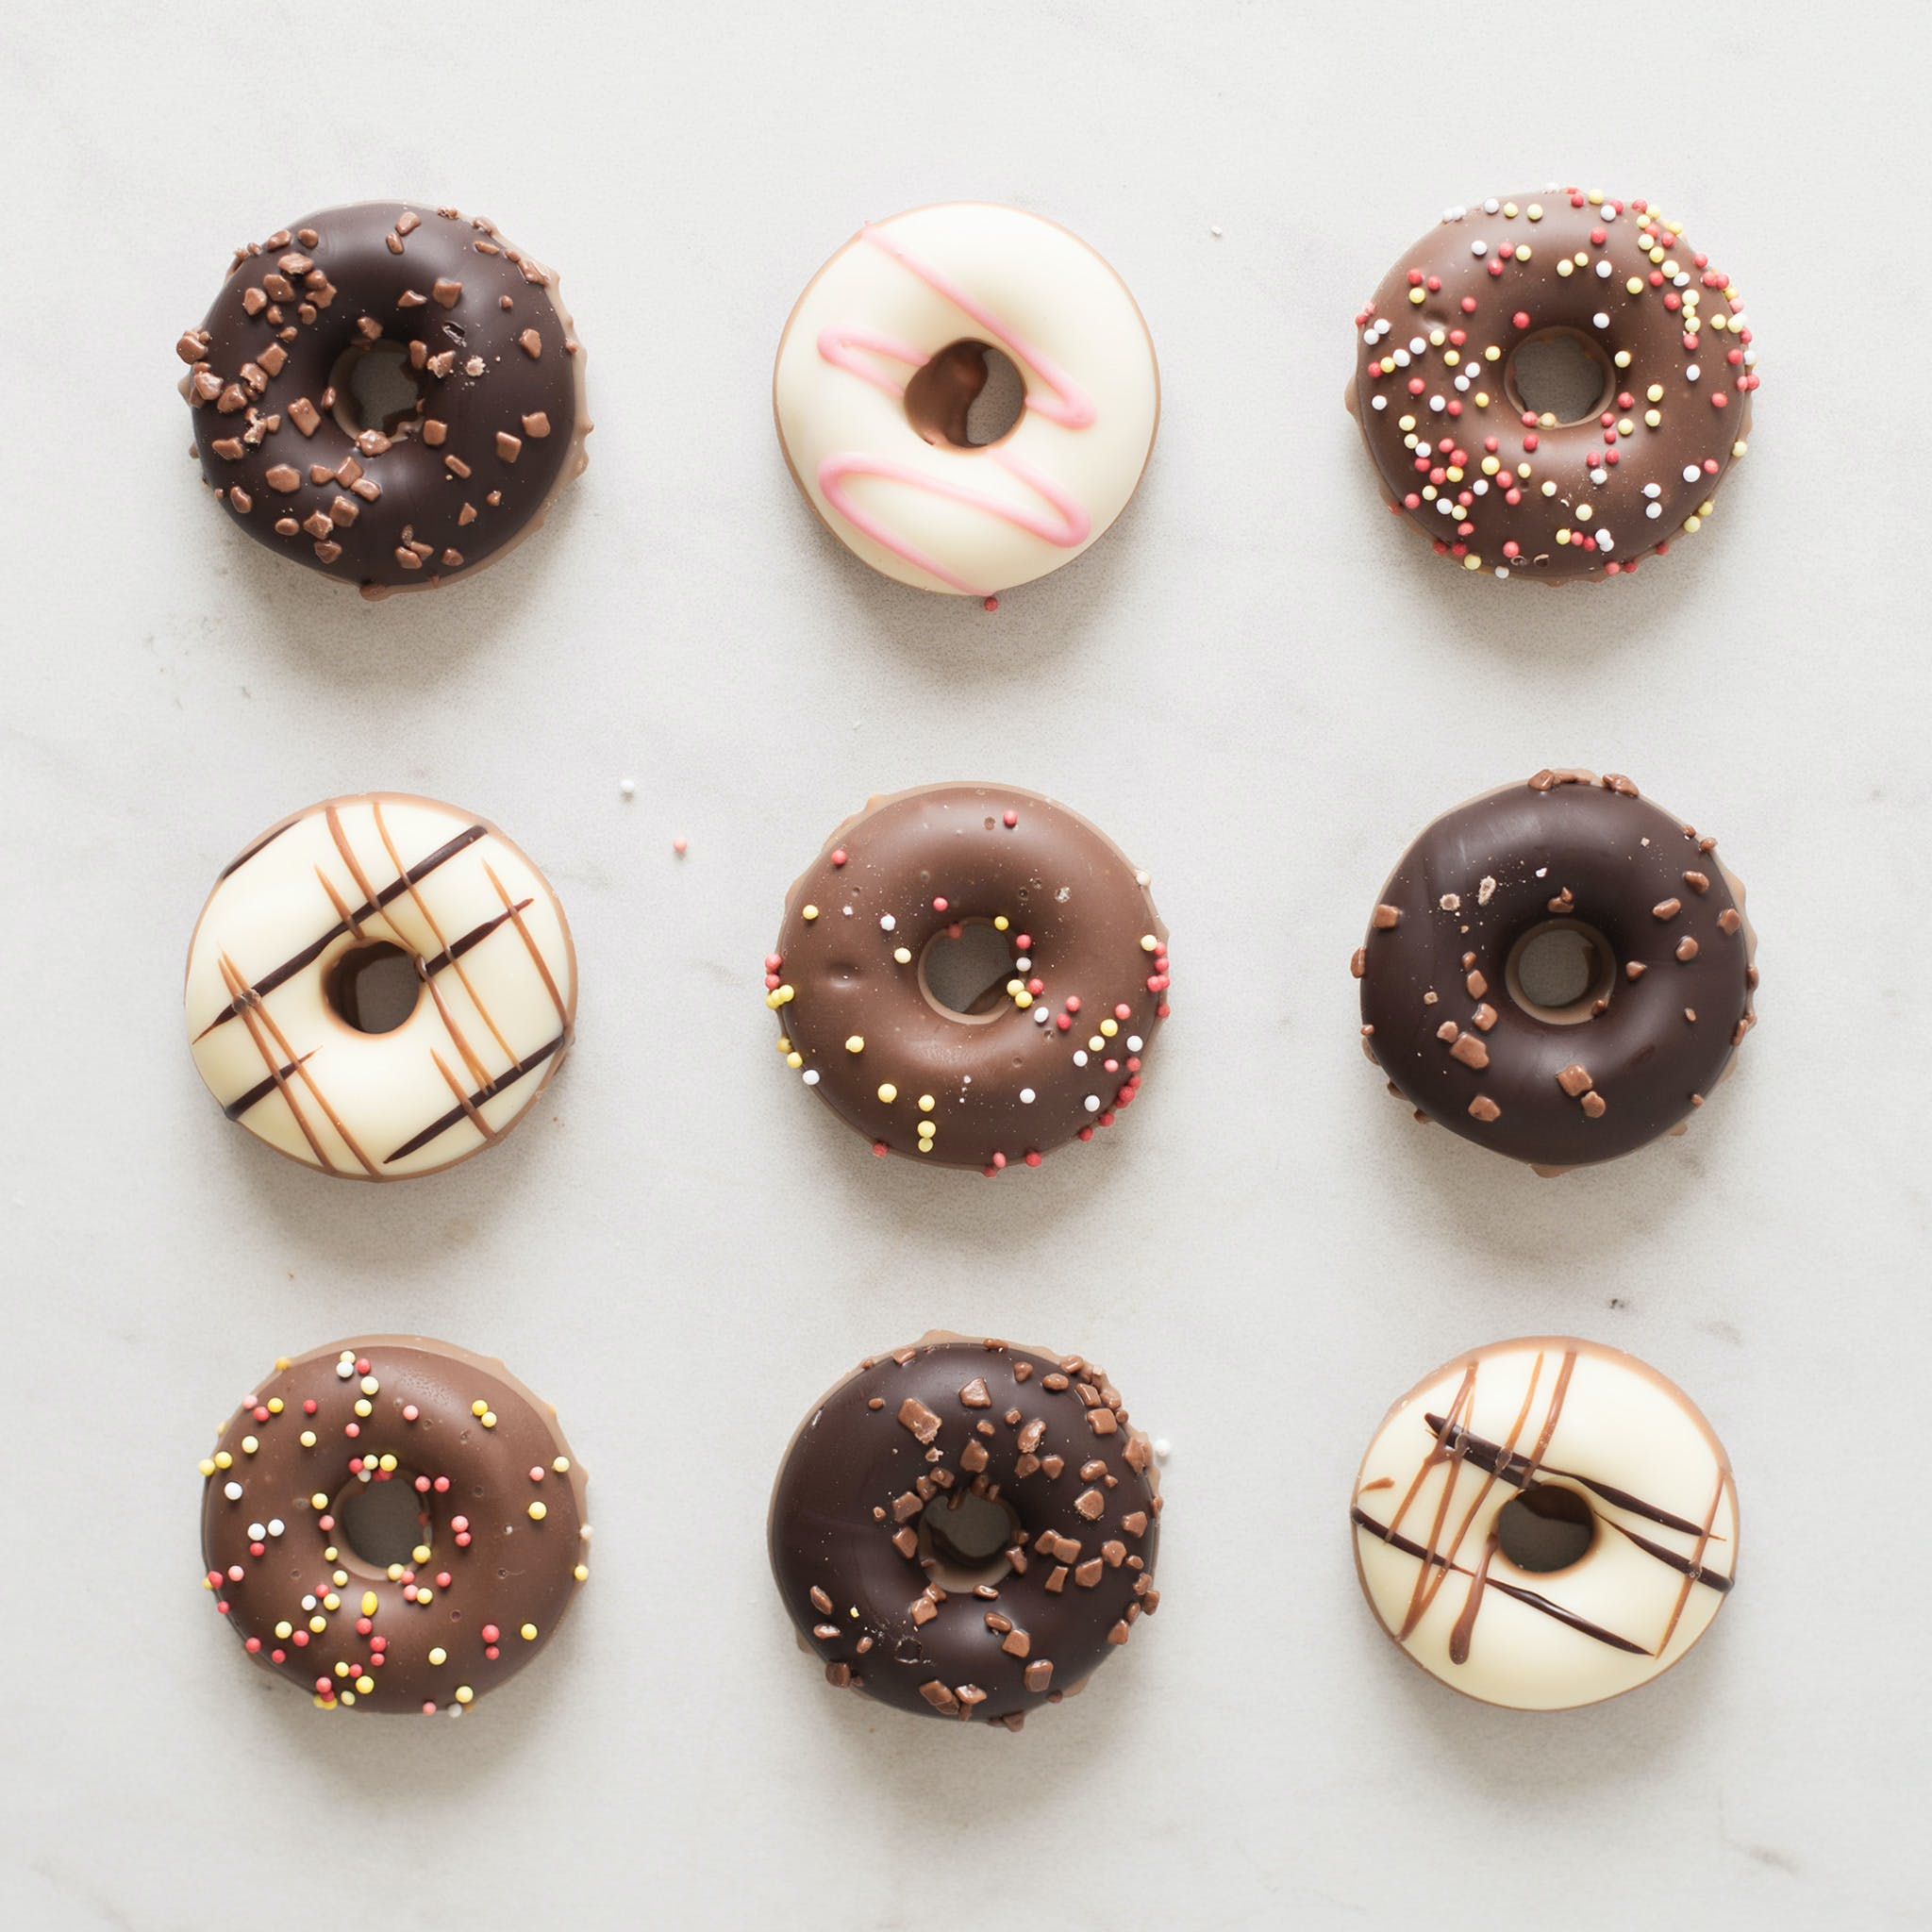 Free stock photo of food, candy, chocolate, donuts